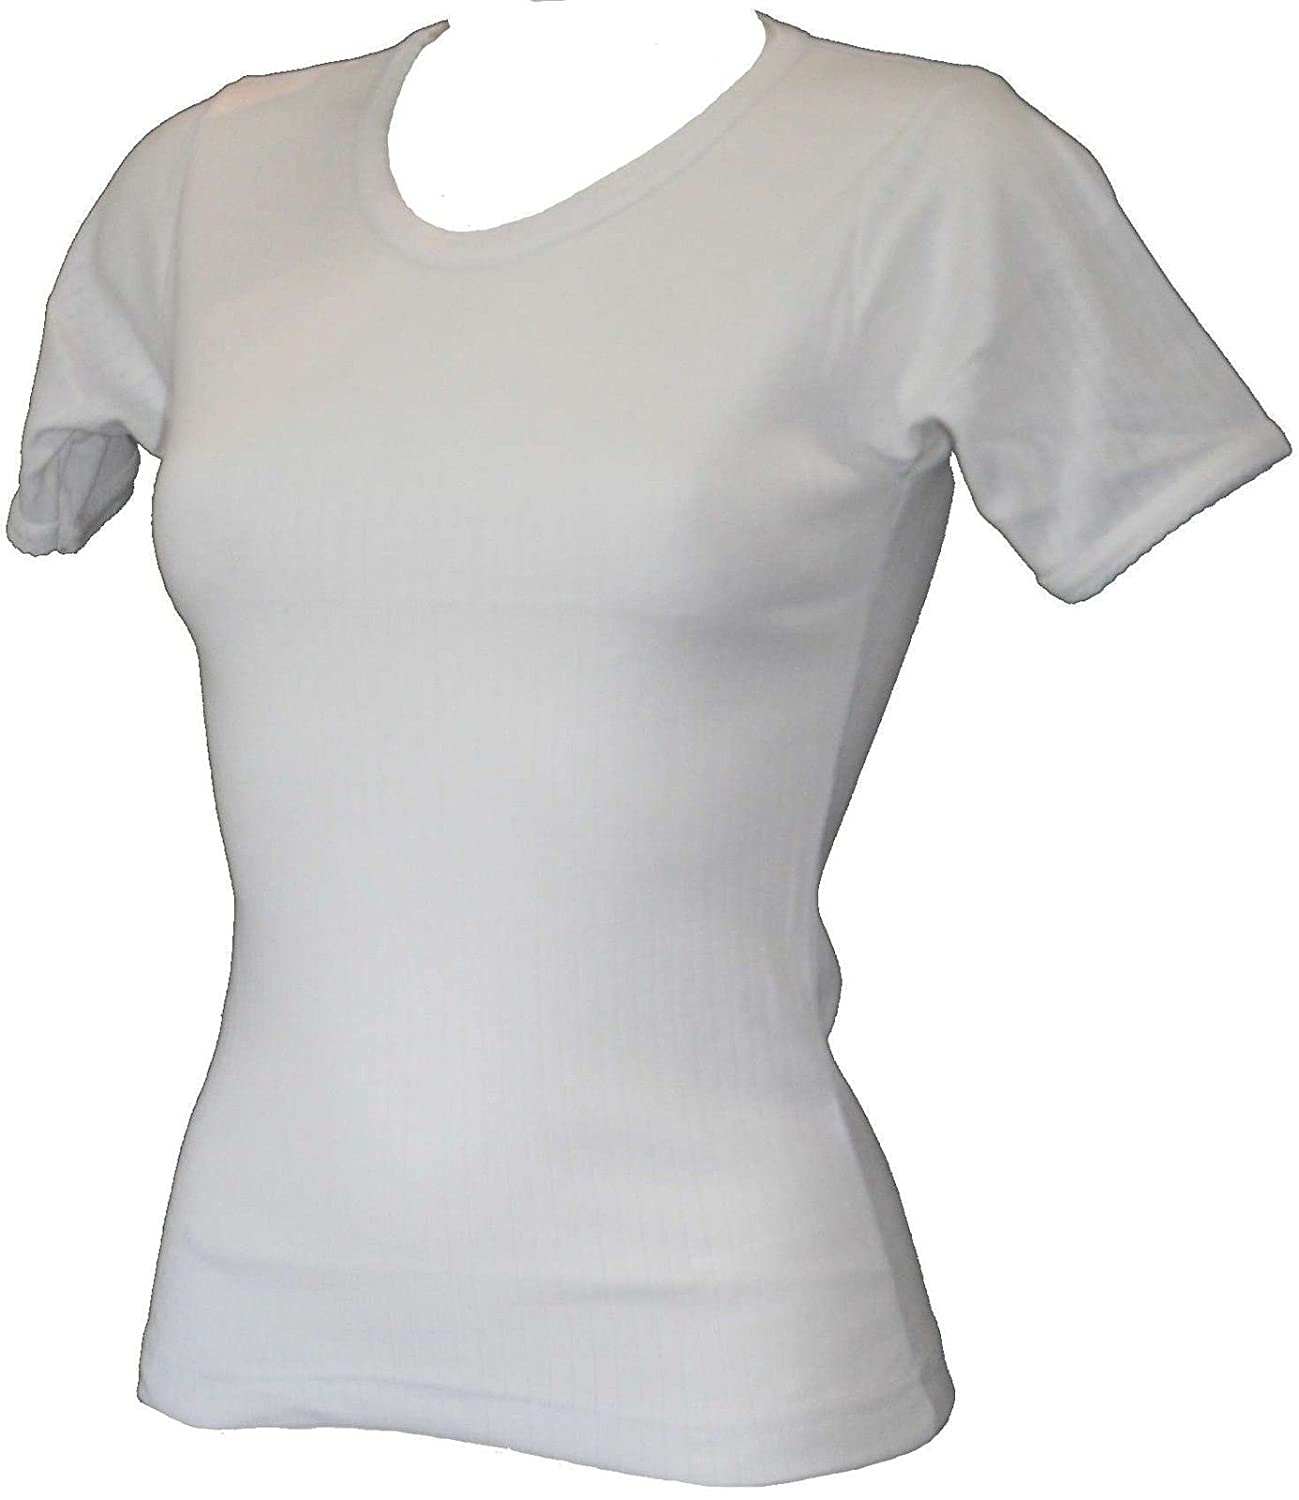 Adore Home Ladies White Warm Thermal Short Sleeved T-shirt Sizes L/XL